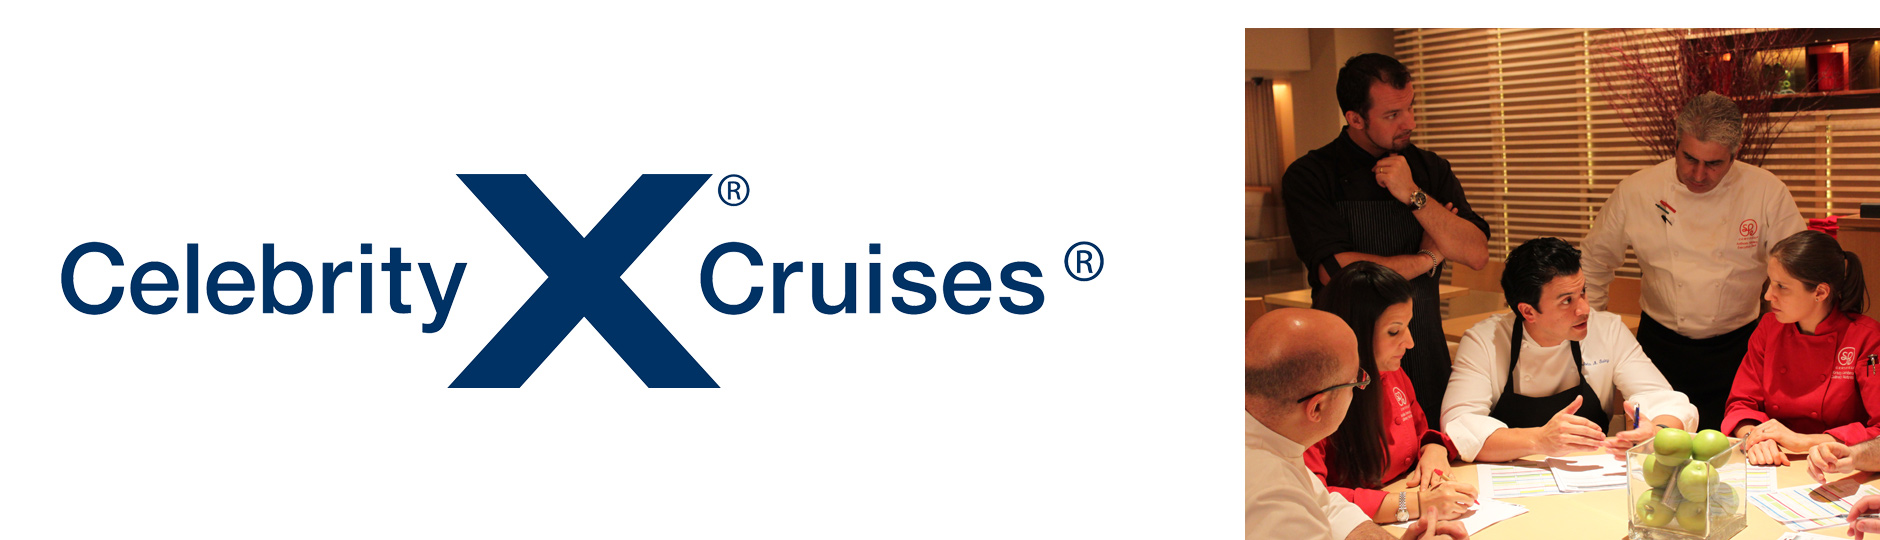 celebrity cruises case study Royal caribbean international is a  the company also merged with the greek cruise line celebrity cruises and changed  royal caribbean argued that this case was.